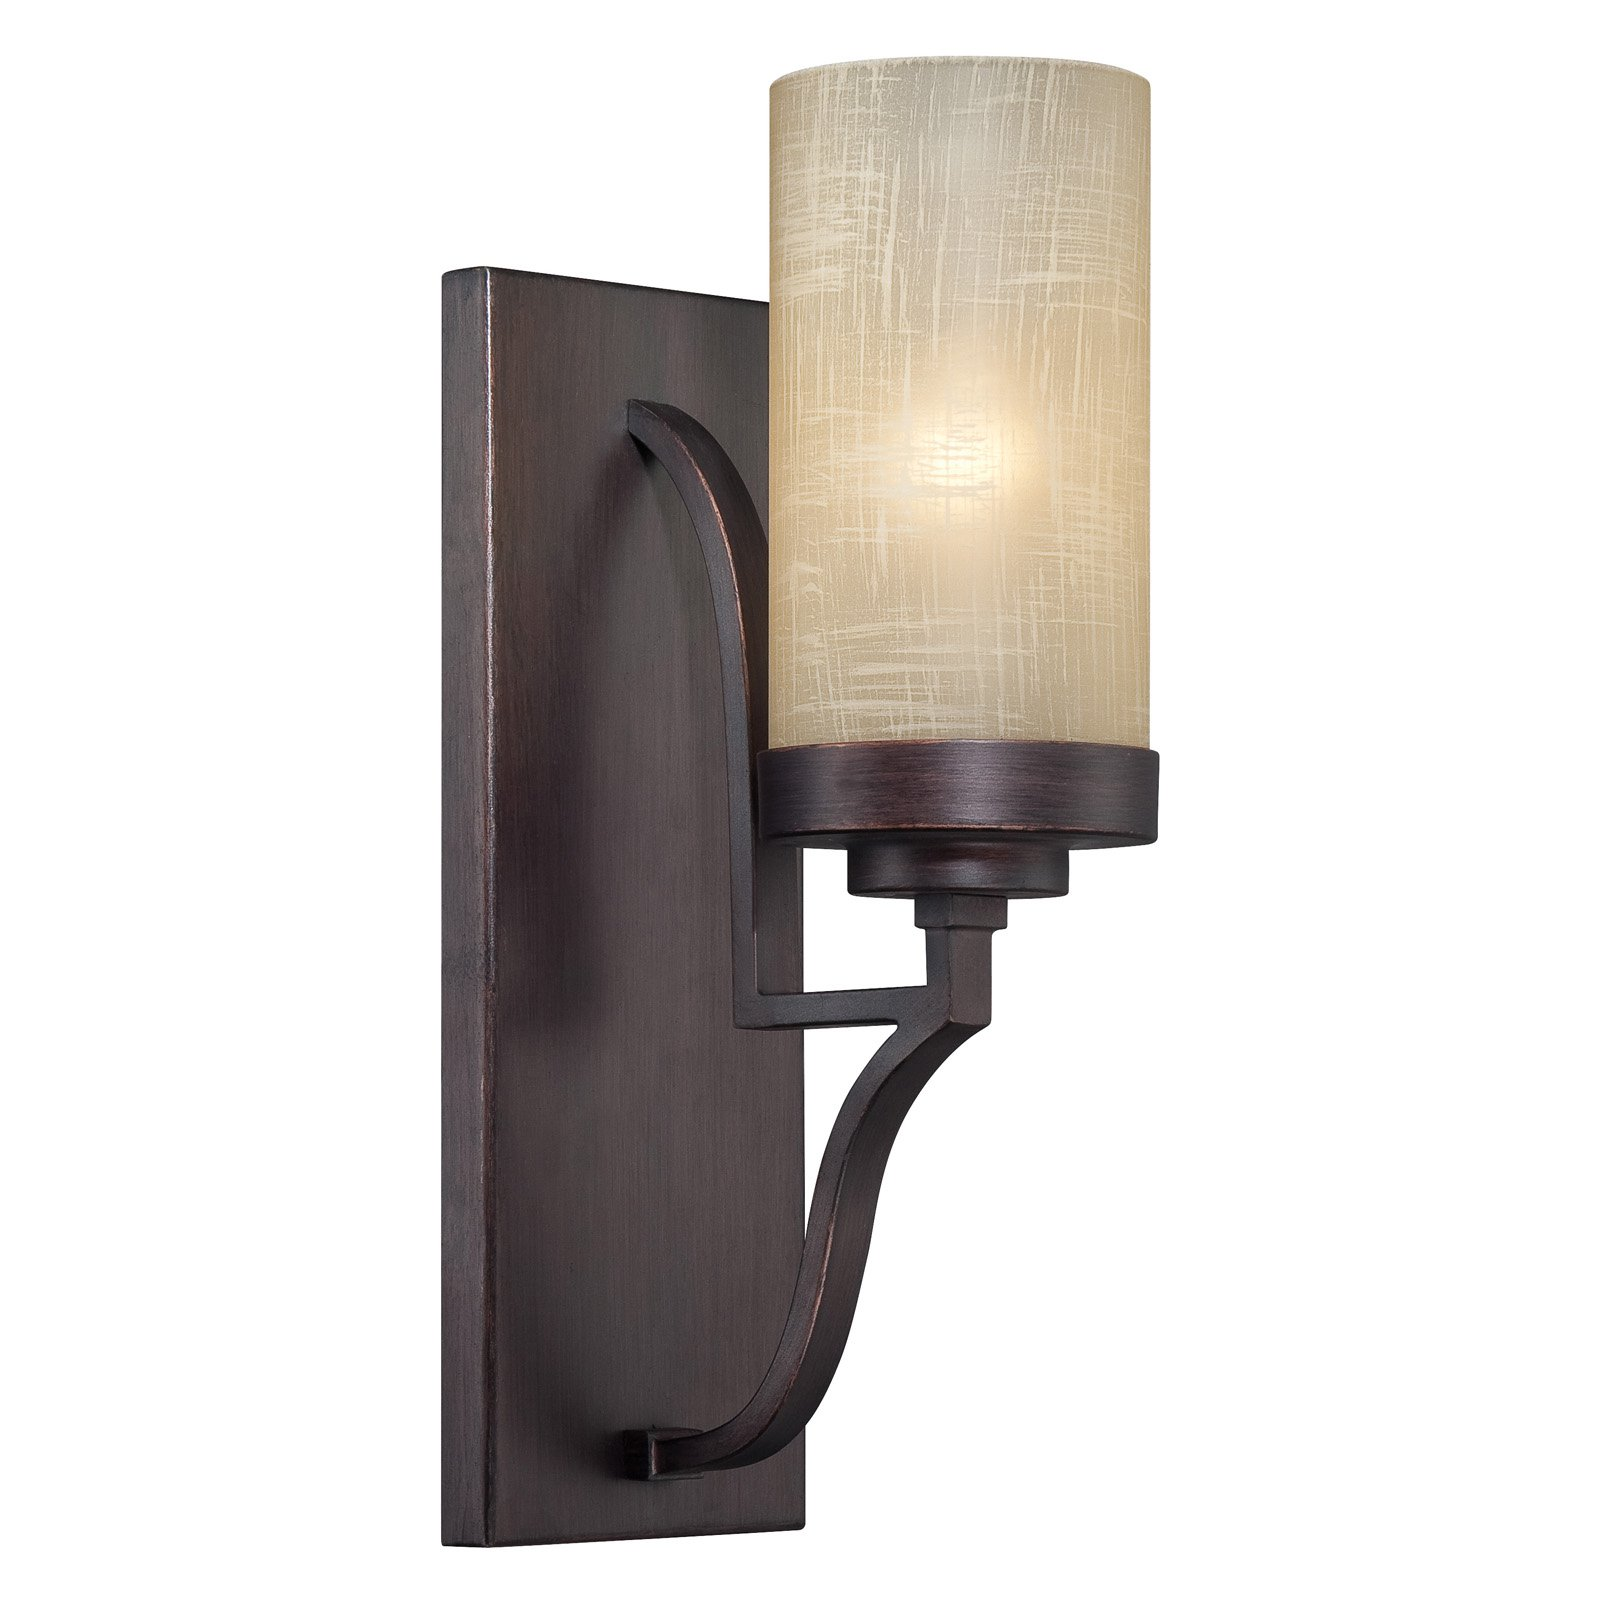 Designers Fountain 83601 Castello Wall Sconce in Tuscana Finish by Designers Fountain